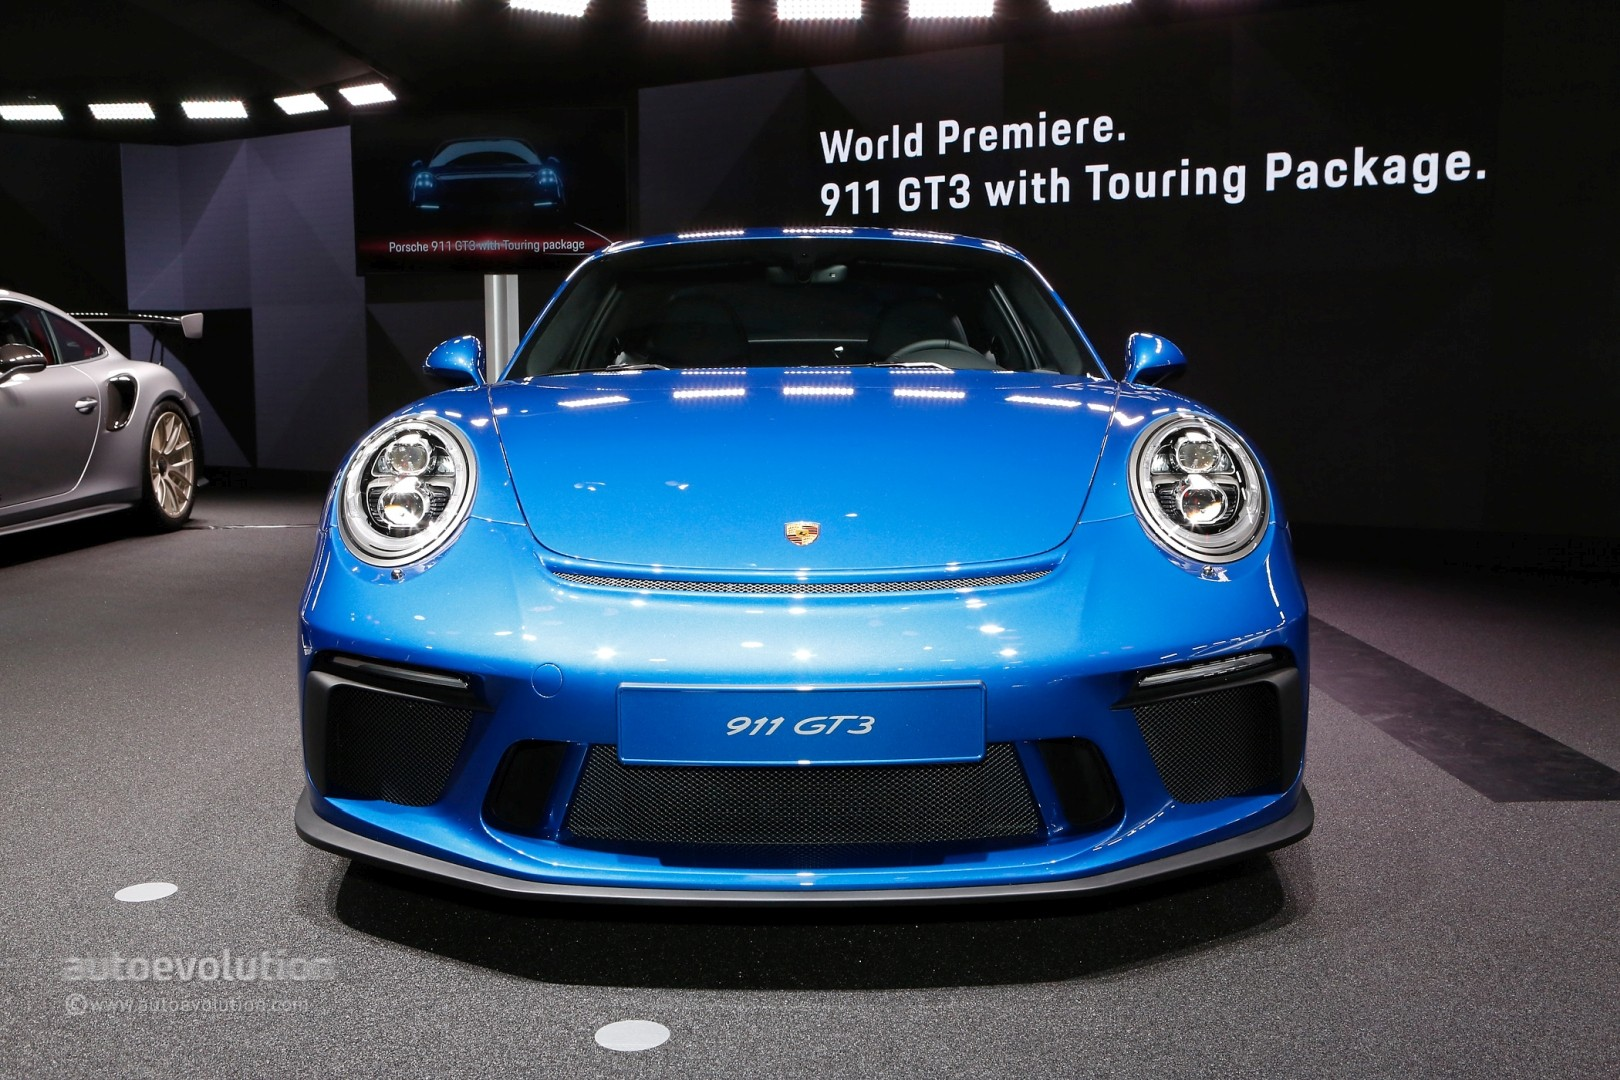 New Porsche 911 GT3 Touring Package Is a No Cost Option ...